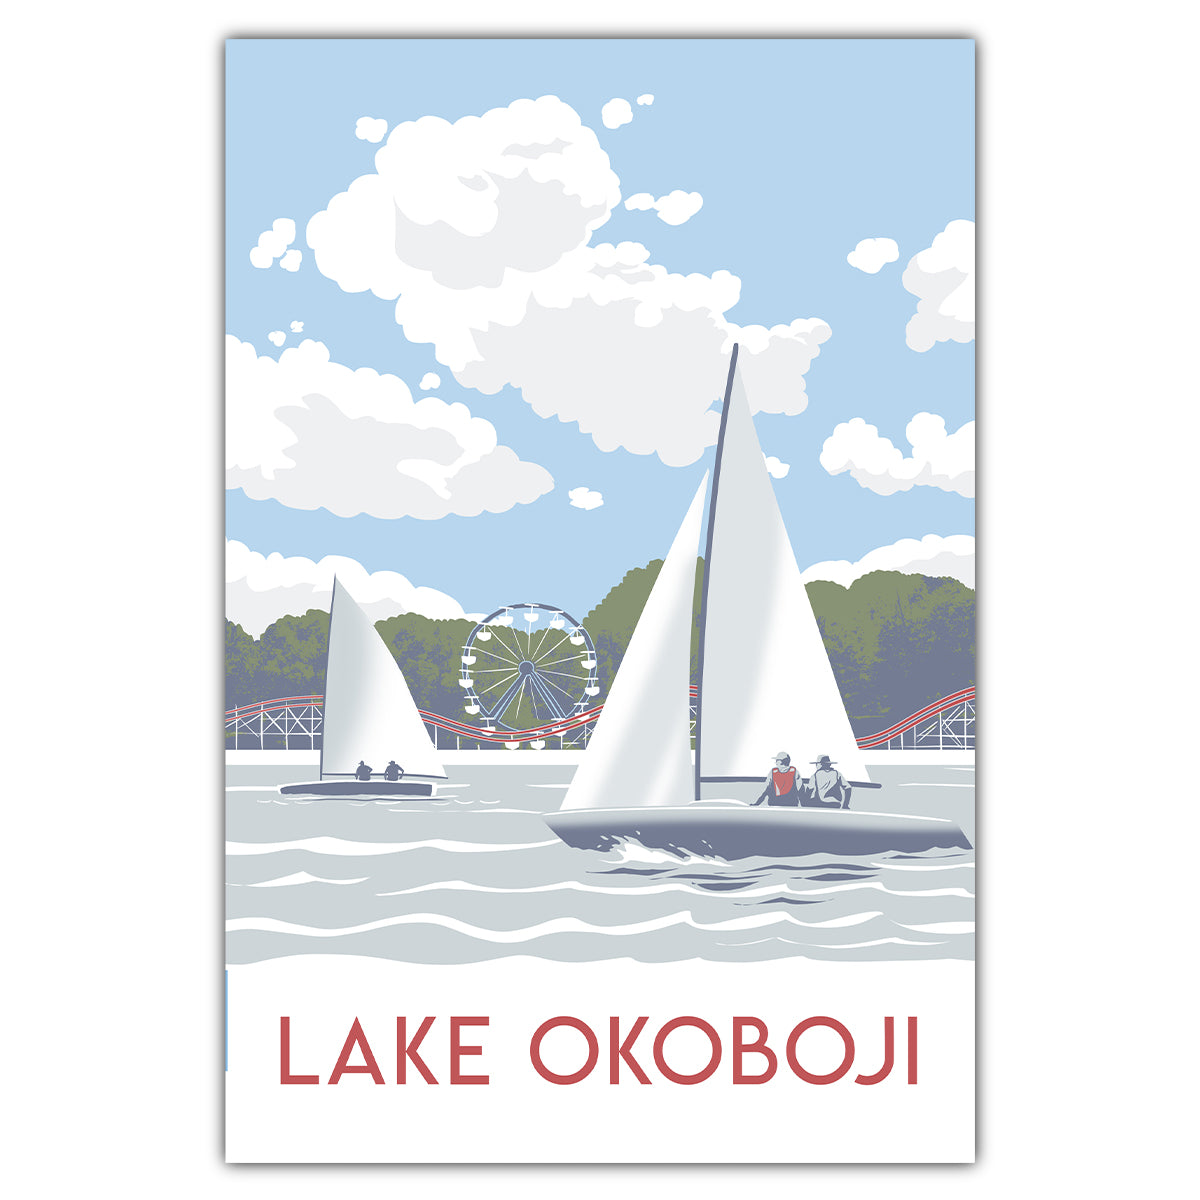 Lake Okoboji Postcard